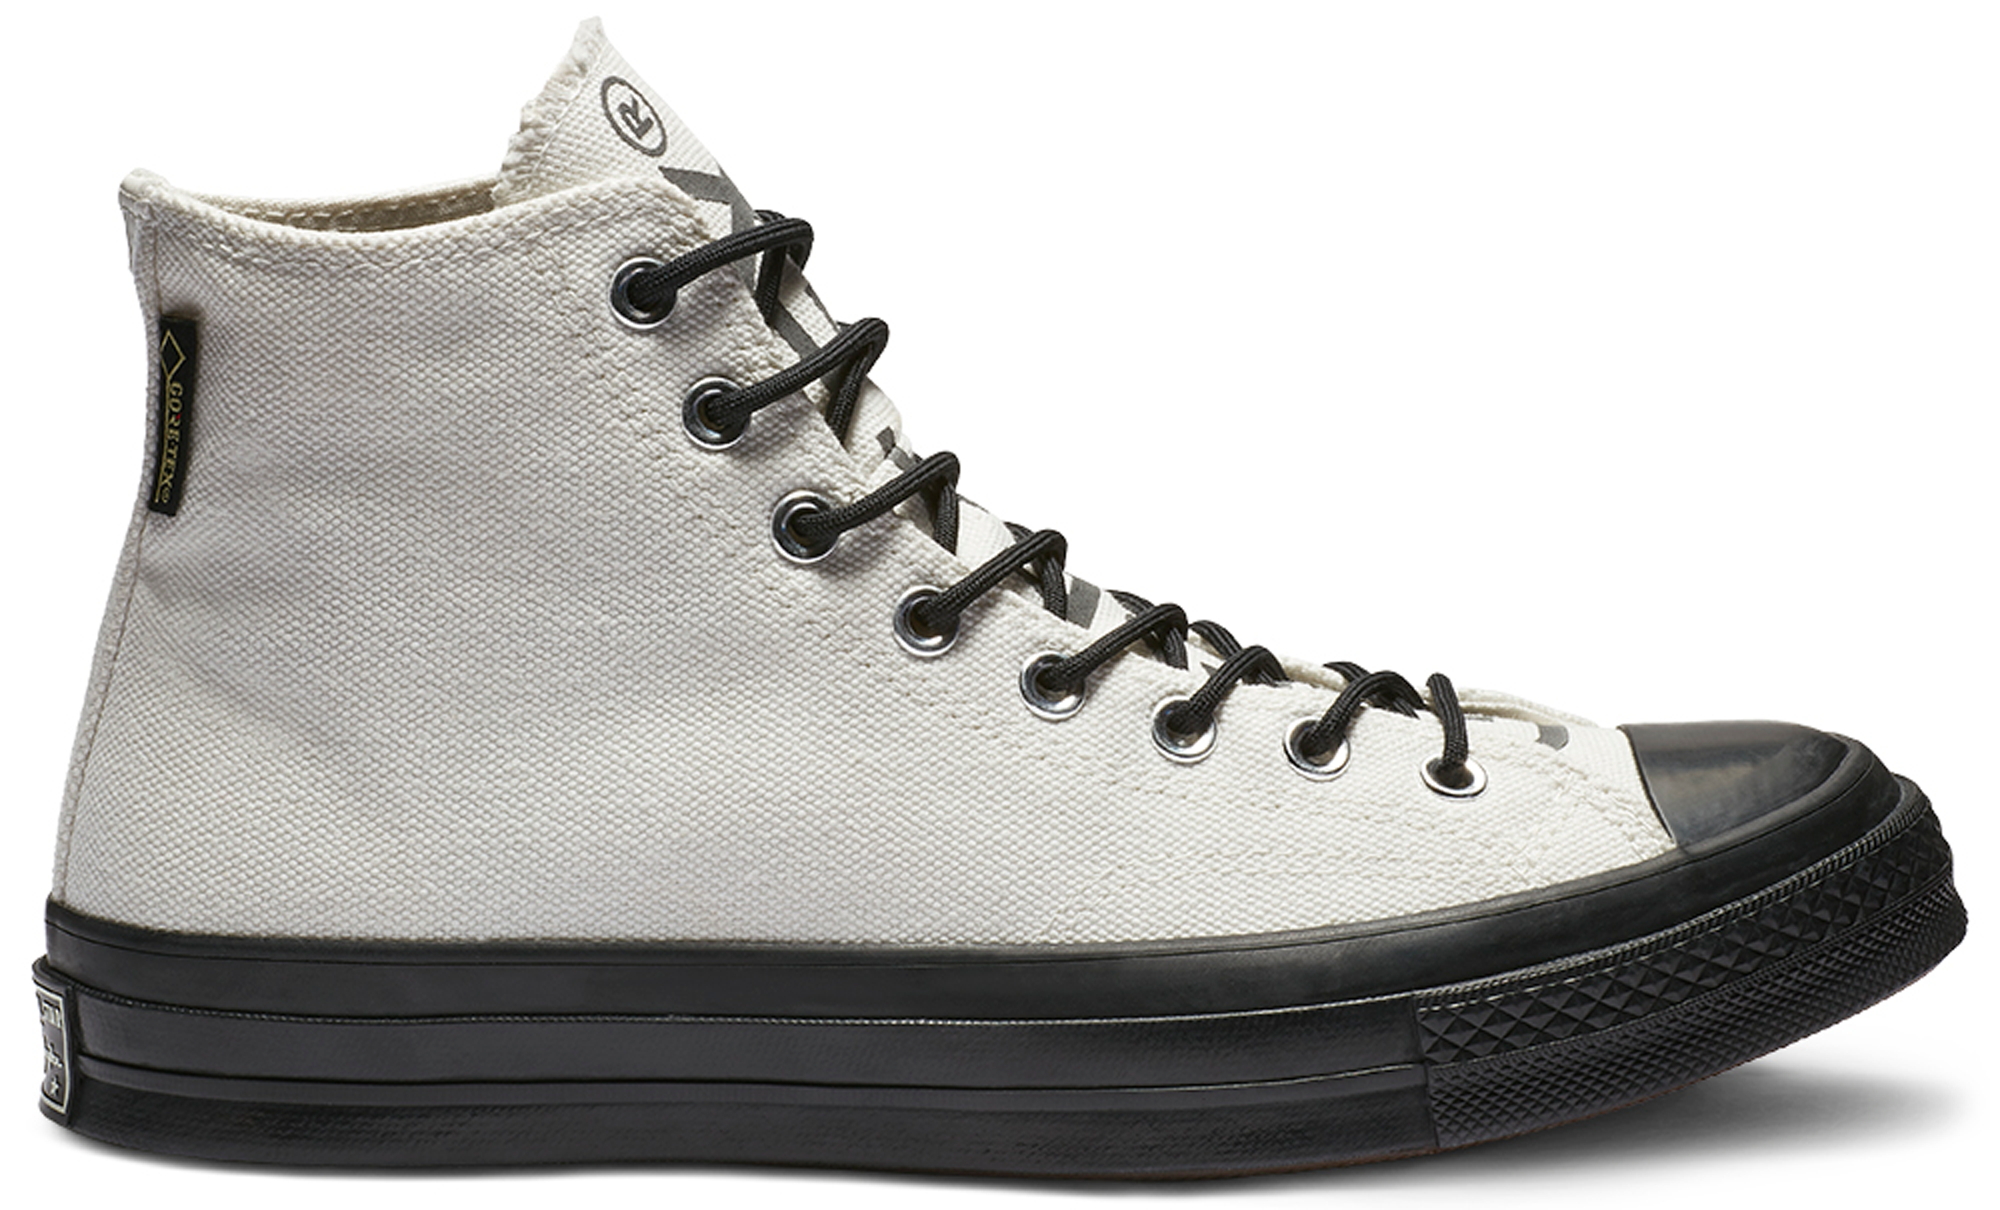 Converse Chuck Taylor All-Star 70s Hi Gore-tex White Black - 162349C